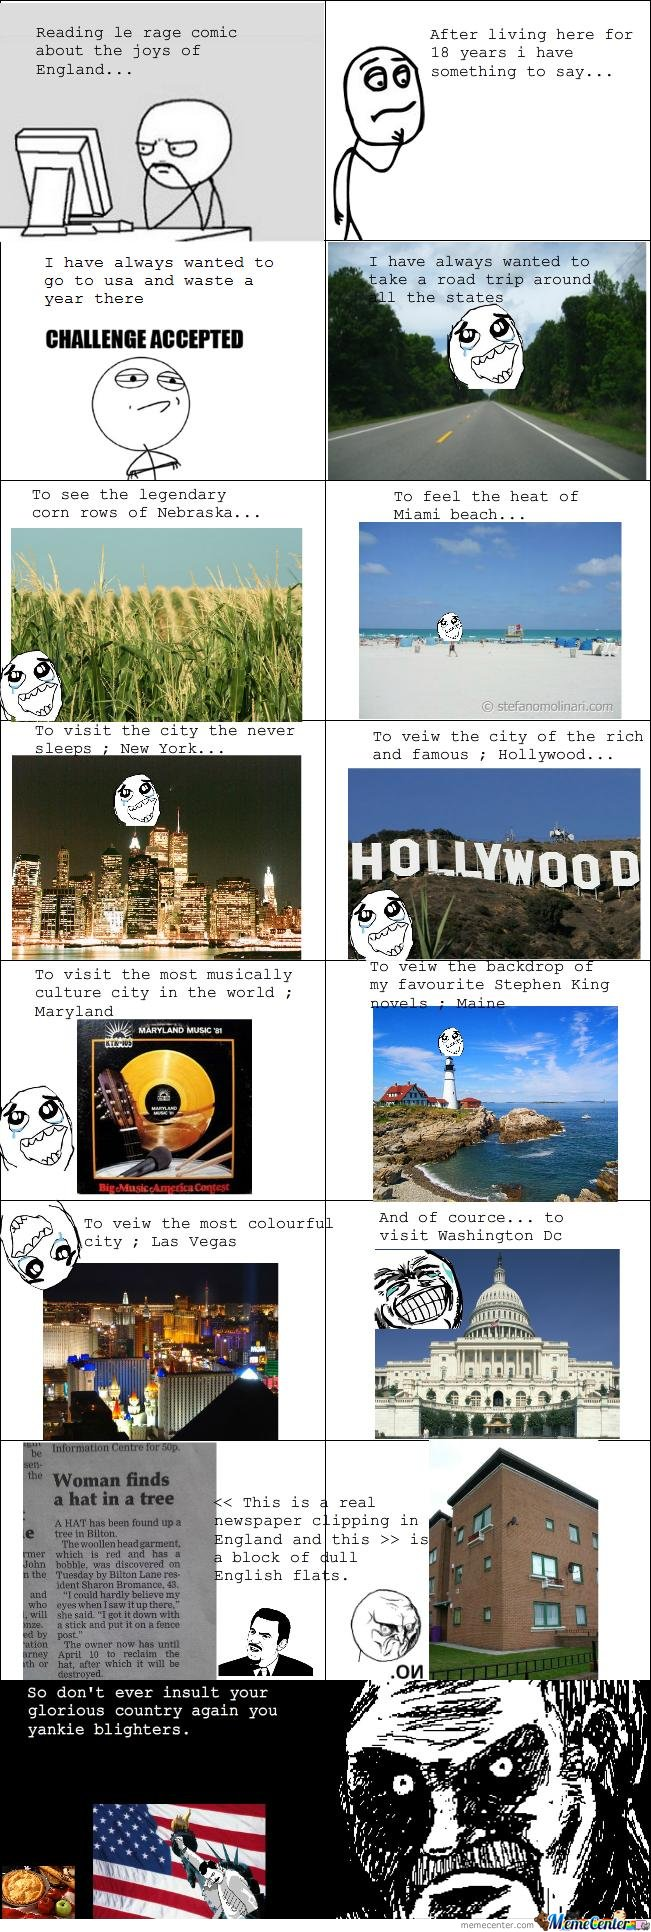 Reading Le Rage Comic About The Joys Of England